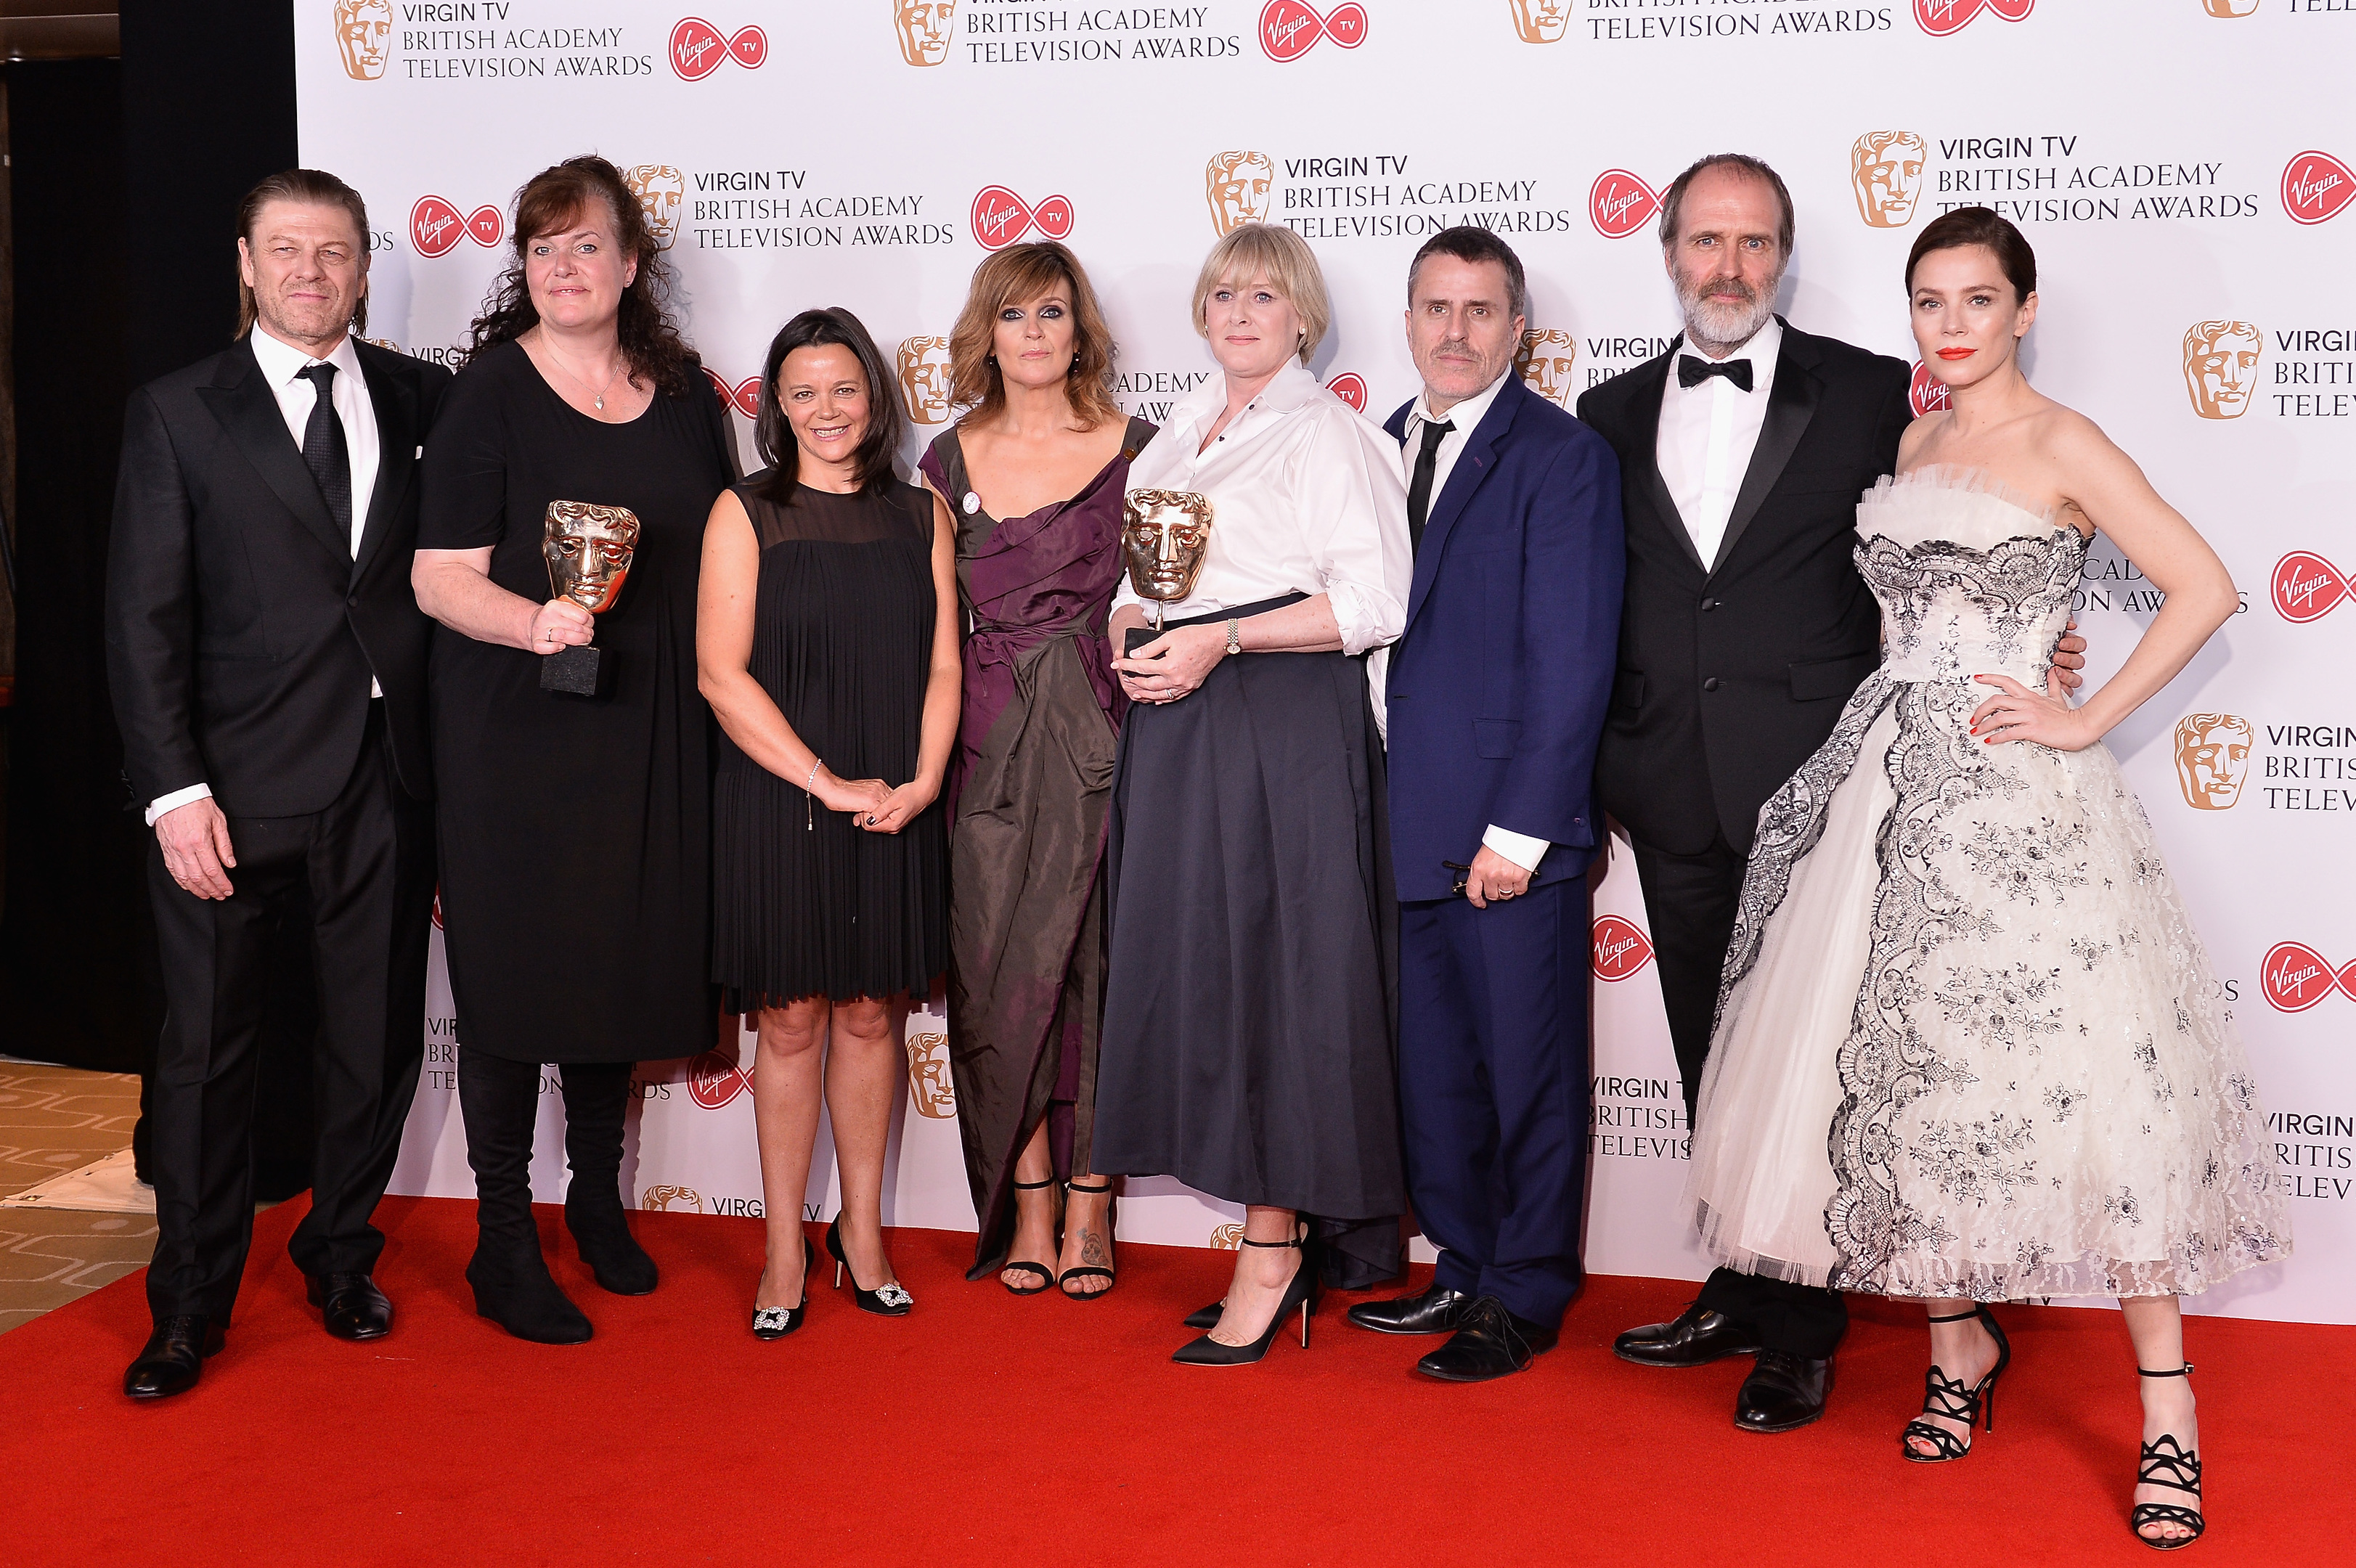 Sean Bean, Sally Wainwright, Juliet Charlesworth, Siobhan Finneran, Nicola Shindler, Neasa Hardiman and Anna Friel pose with the award for Drama Series, Happy Valley in the Winner's room at the Virgin TV BAFTA Television Awards (Jeff Spicer/Getty Images)